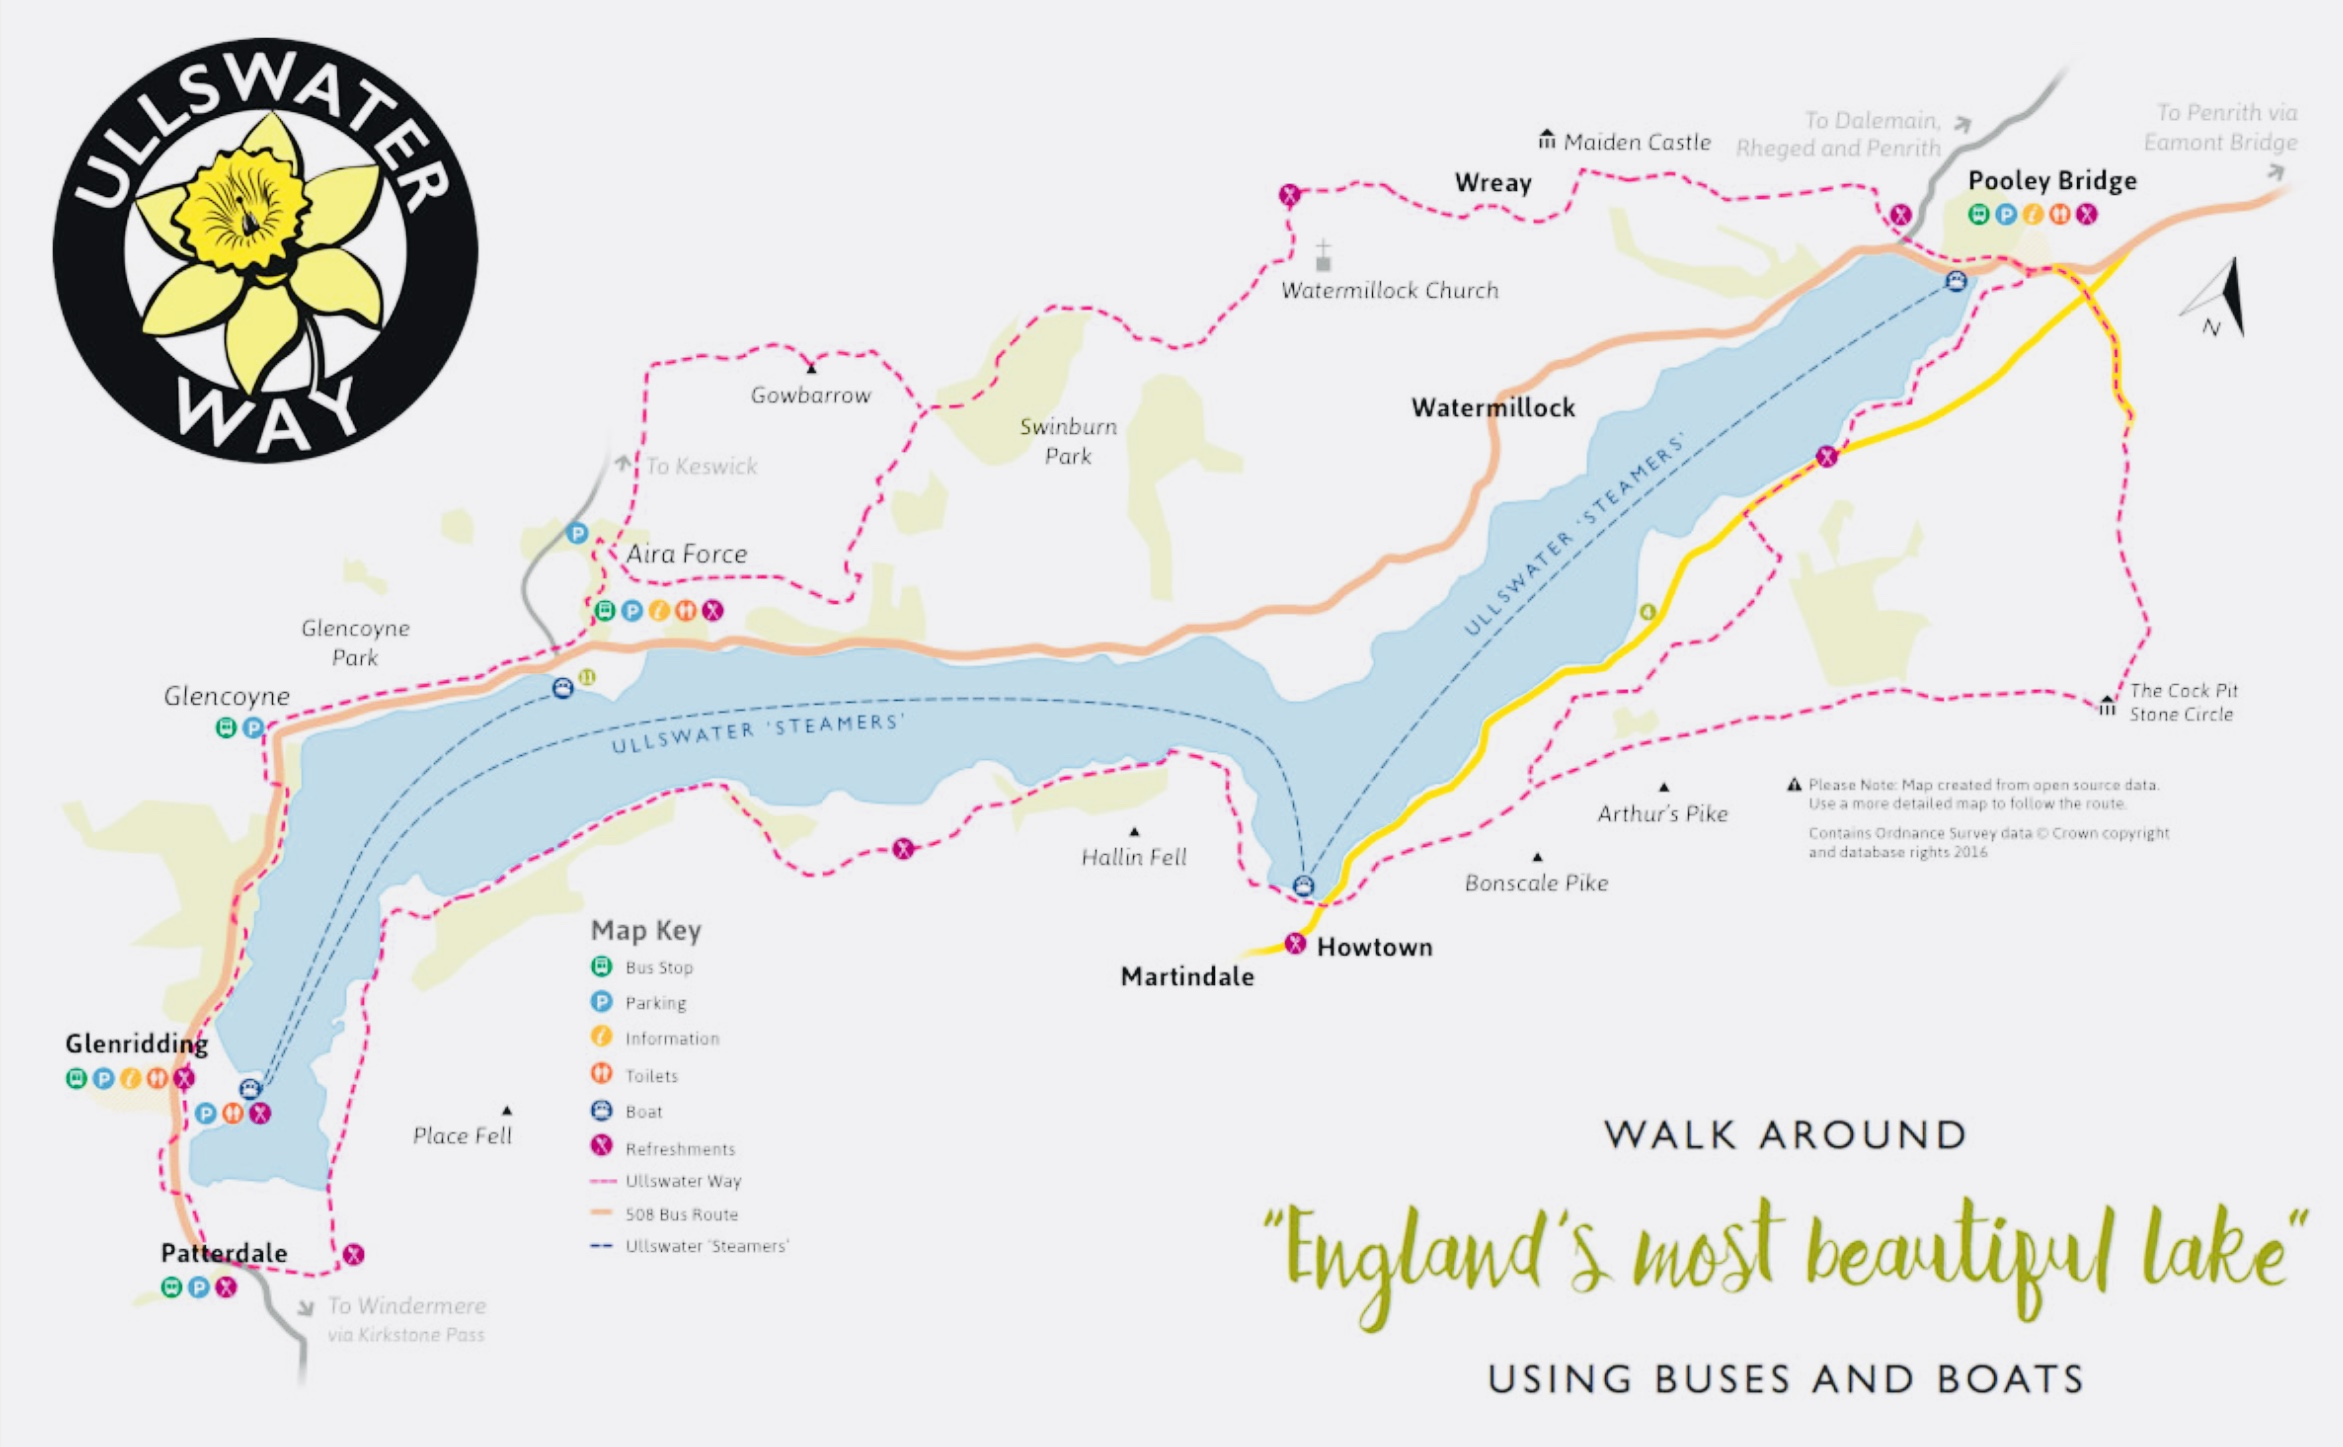 Map of the Ullswater Way